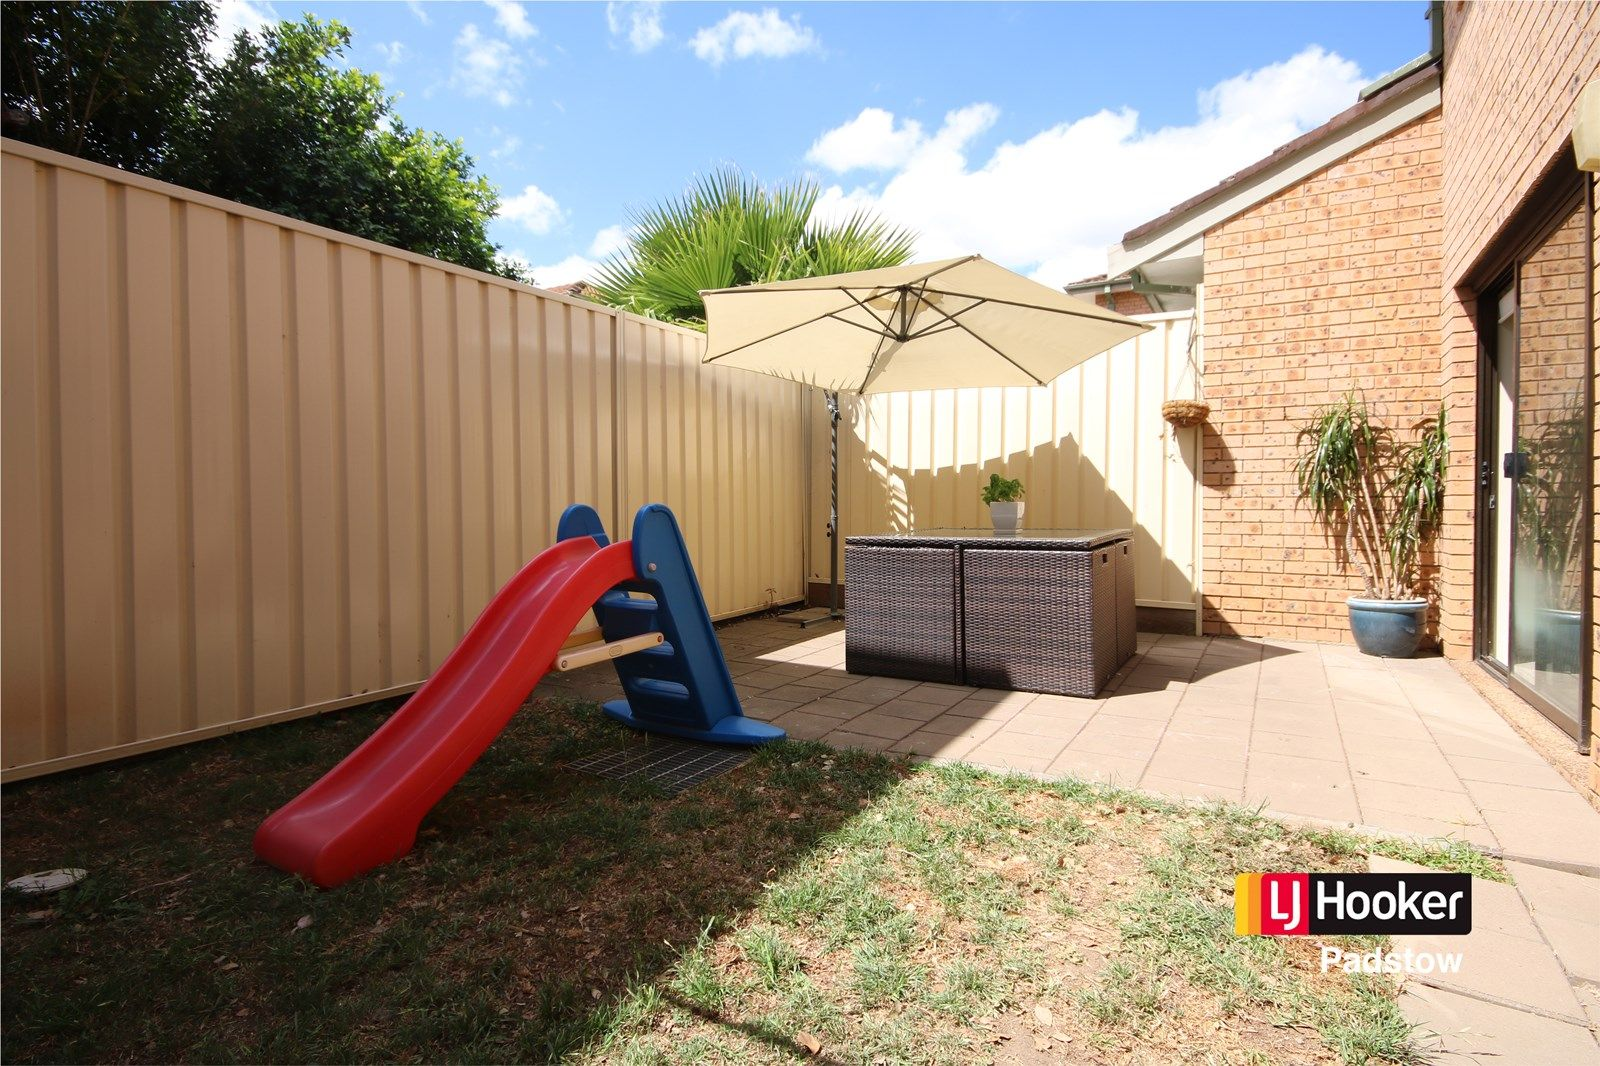 20/220 Newbridge Road, Moorebank NSW 2170, Image 6